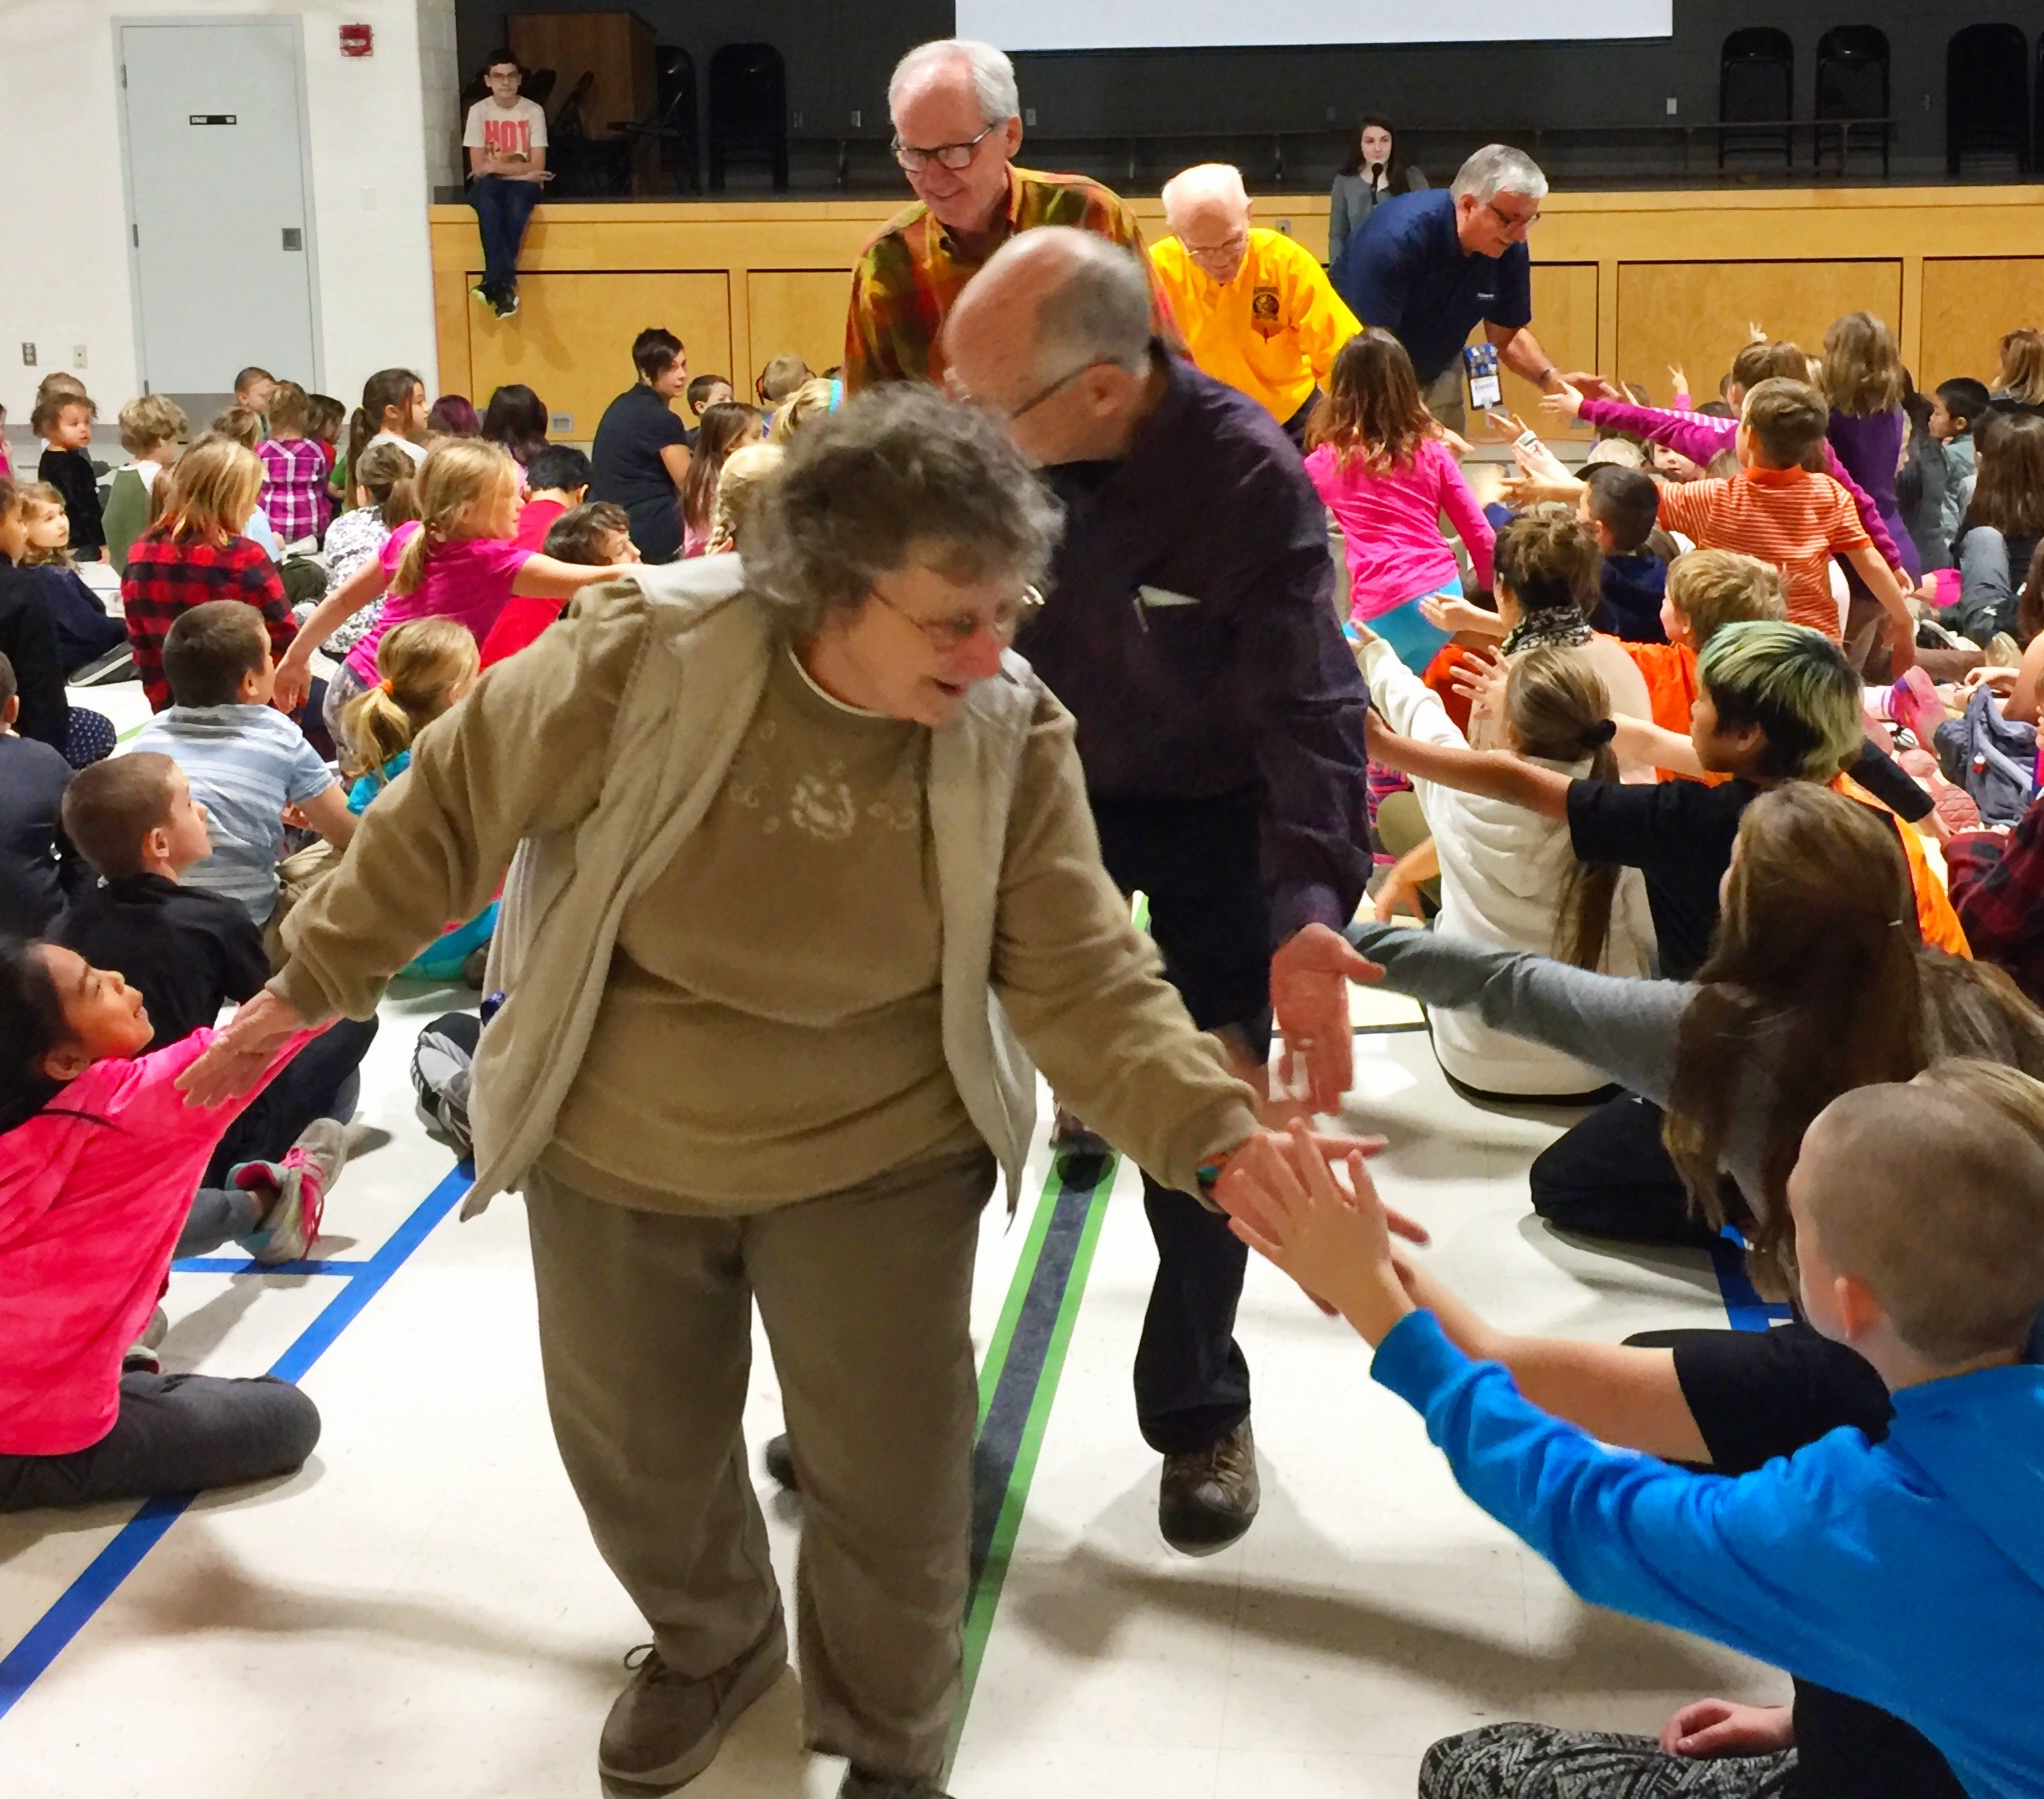 Kiwanis Partnership With P.E. McGibbon Shows Heart